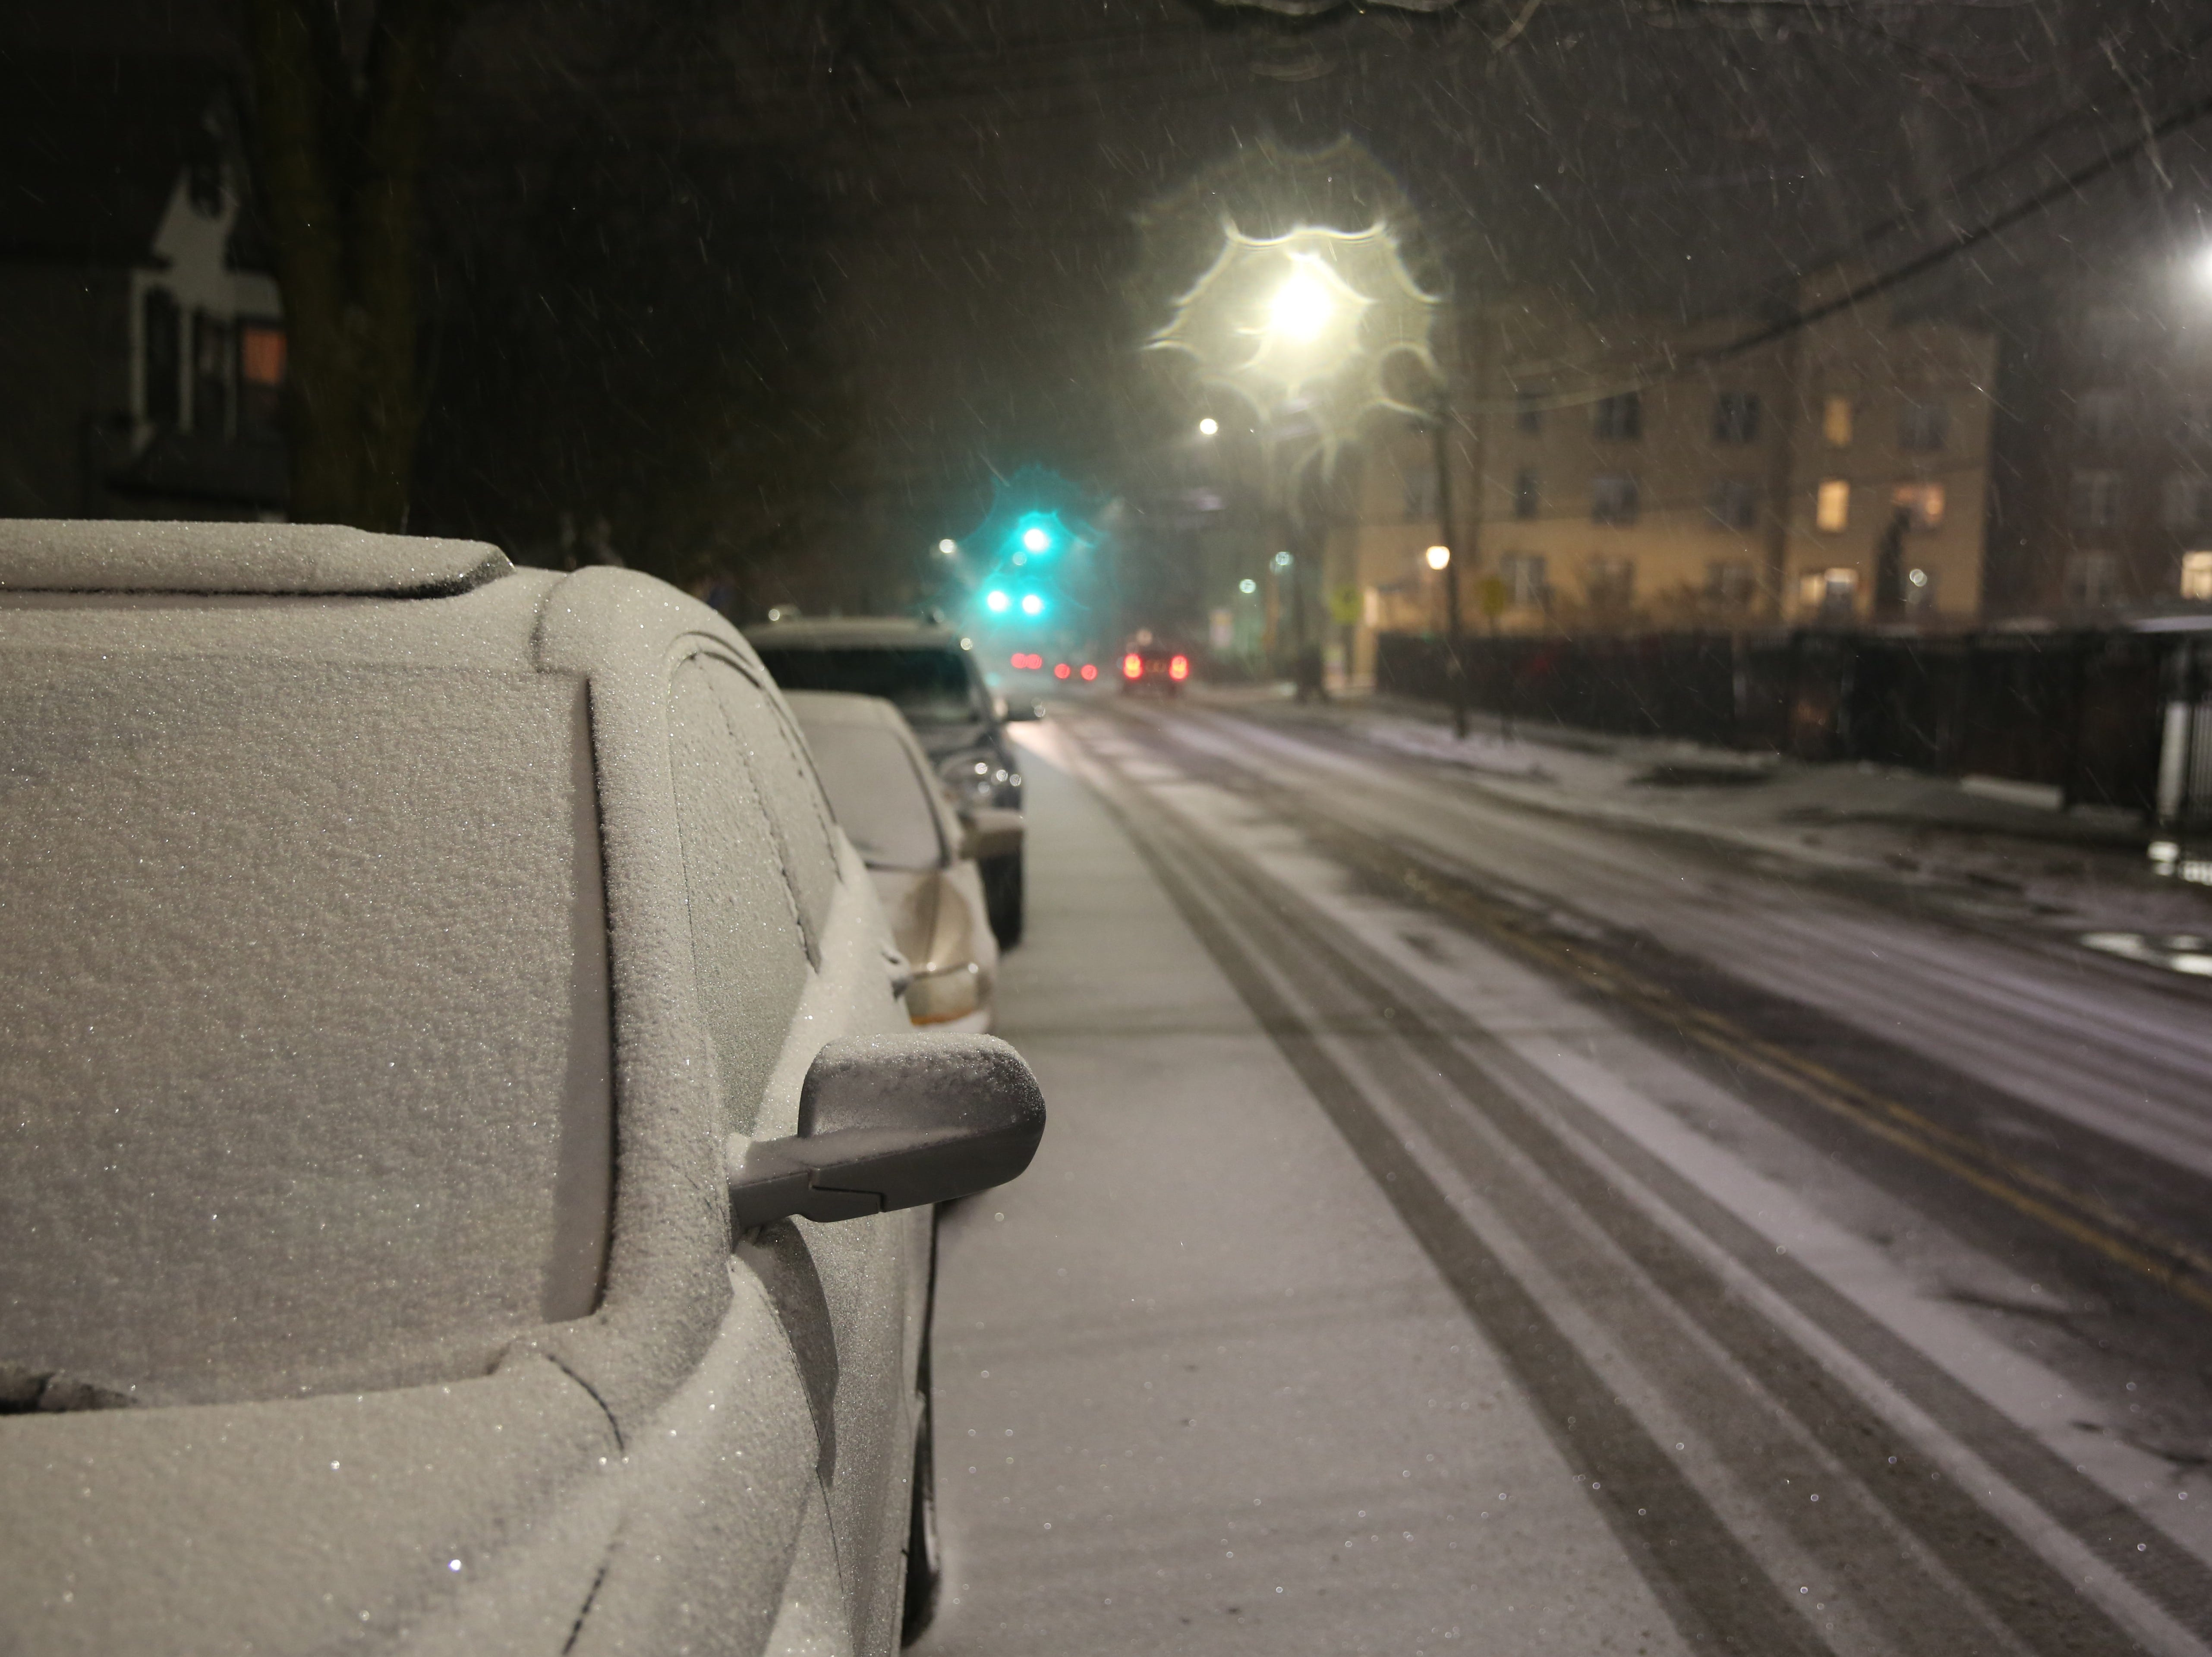 Snow collects on cars in the City of Poughkeepsie on Saturday night. The region is expected to get 4-8 inches of snow and possibly ice Saturday into Sunday.